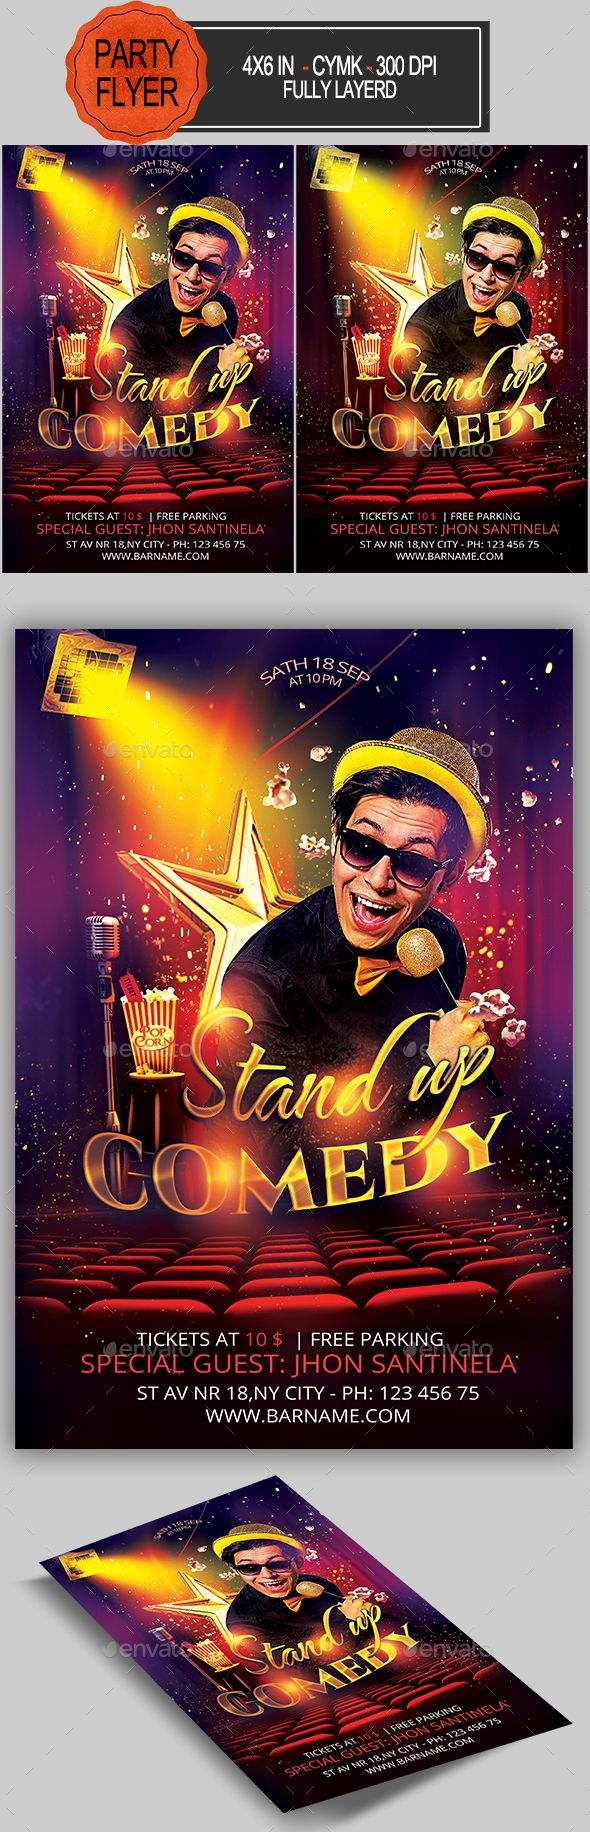 Comedy Flyer Template Pdf Topsimages